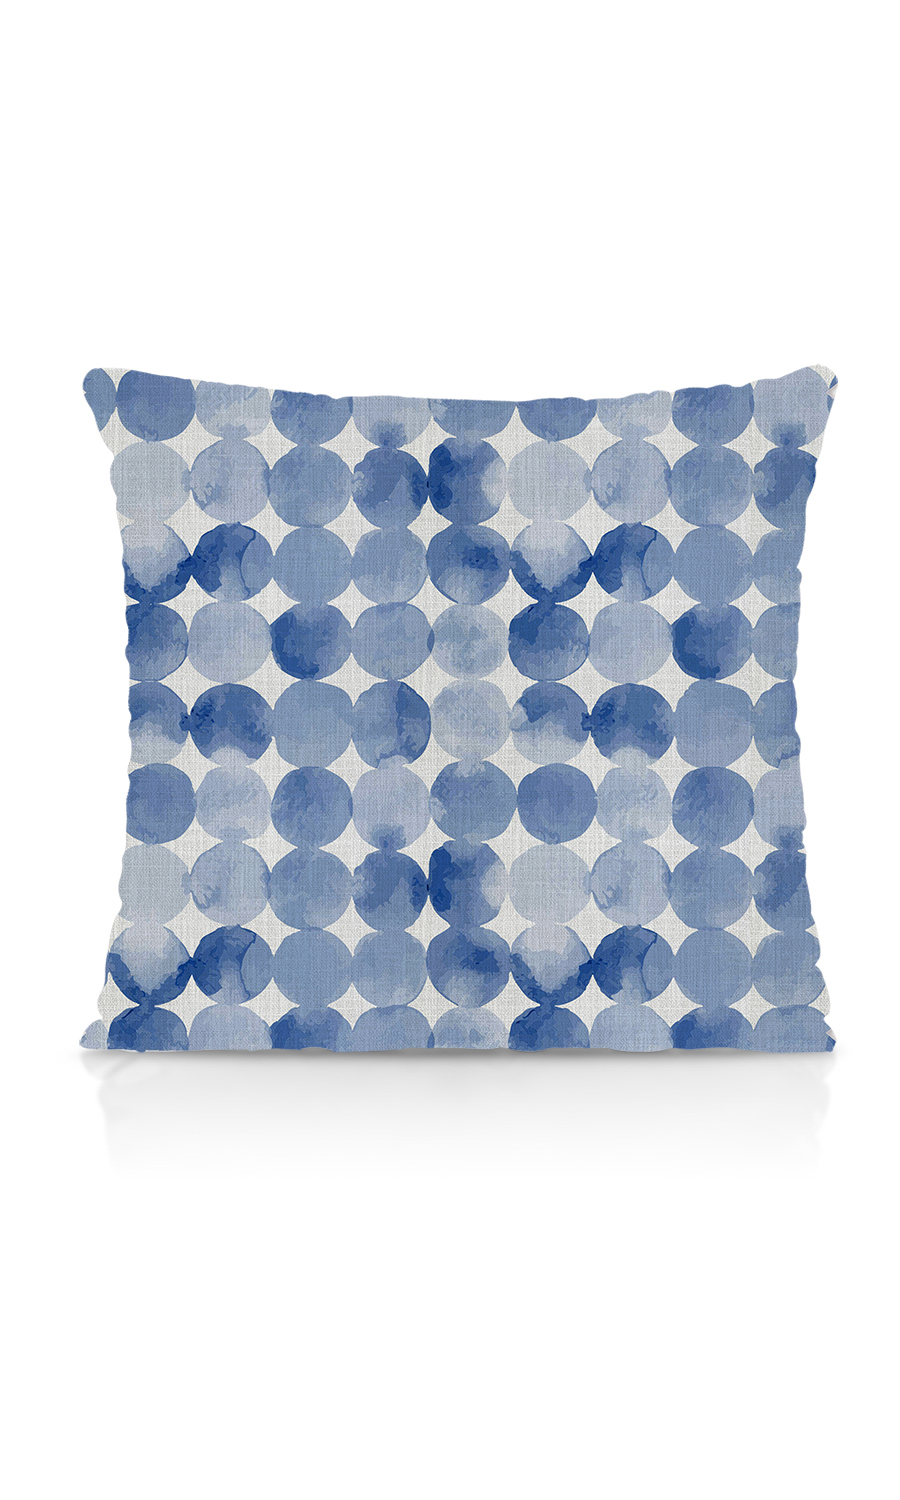 Geometric Custom Cushions For Bedroom